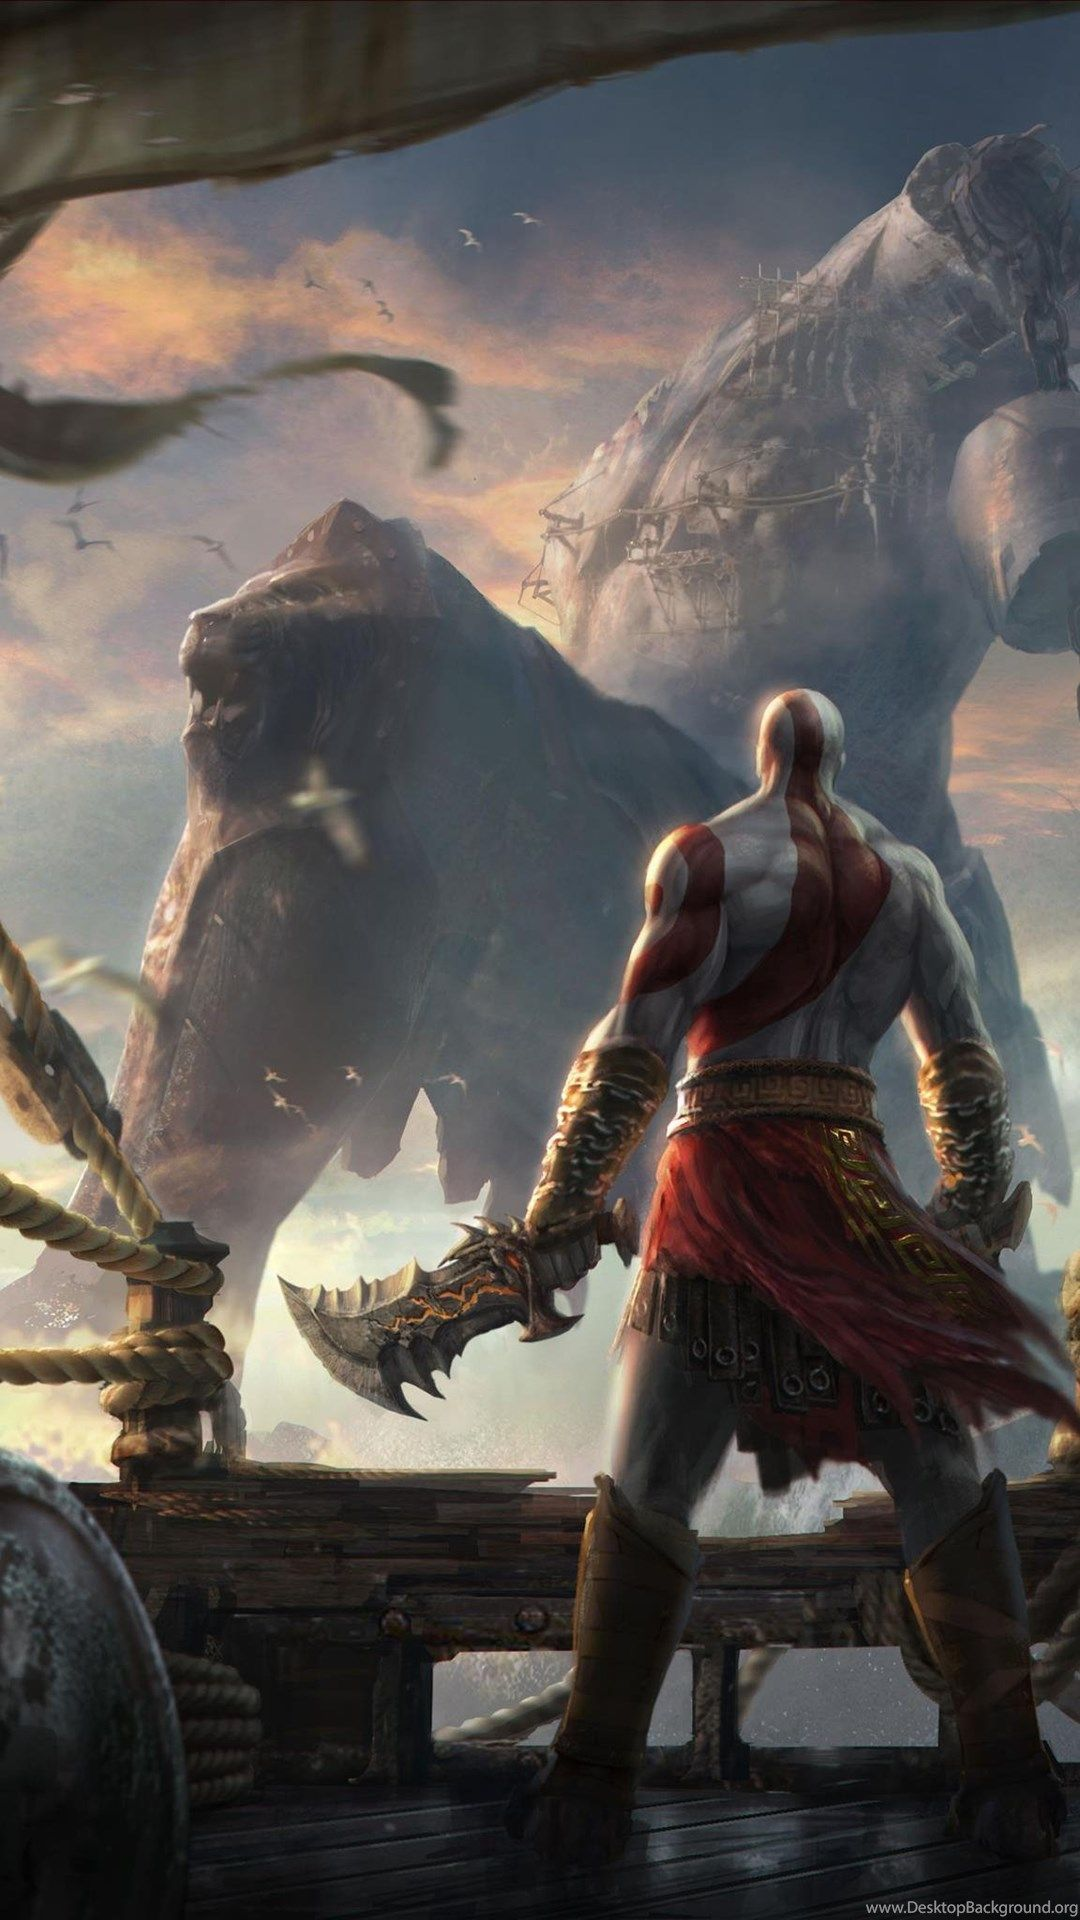 Trends For God Of War Wallpaper 4k For Android Pictures In 2020 Kratos God Of War God Of War God Of War Series